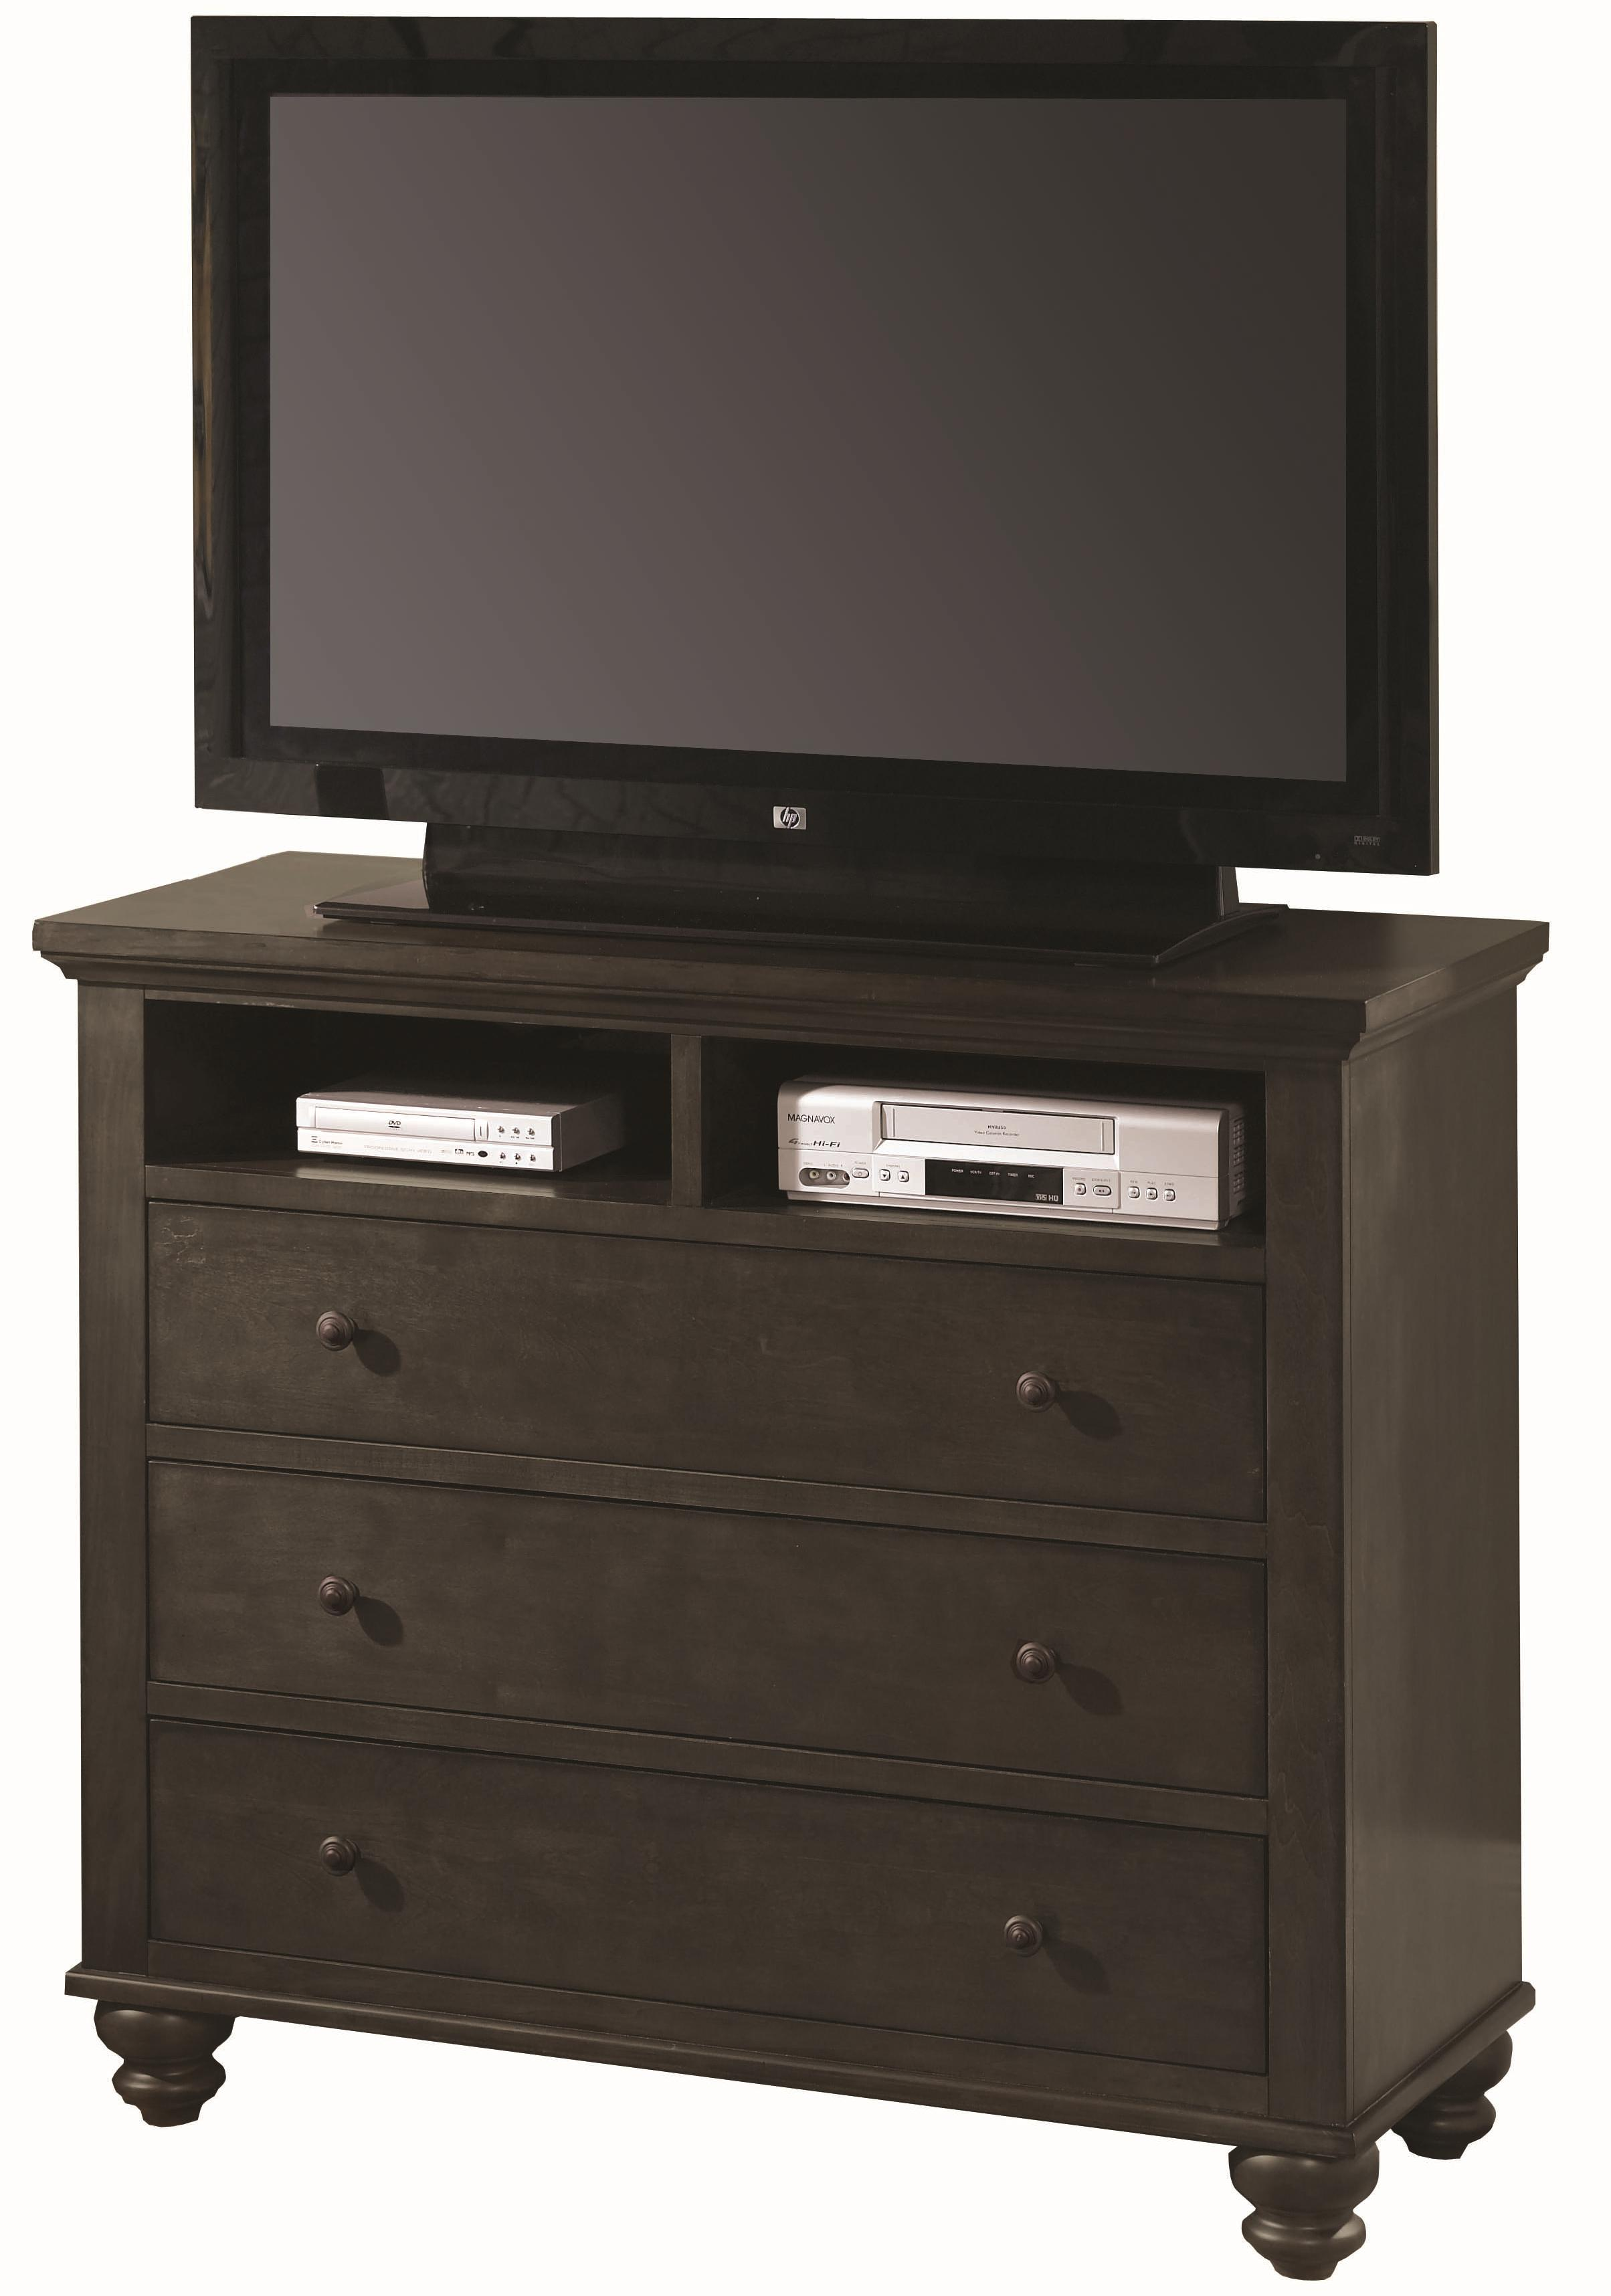 Aspenhome Cambridge Entertainment Chest - Item Number: ICB-485-BLK-1